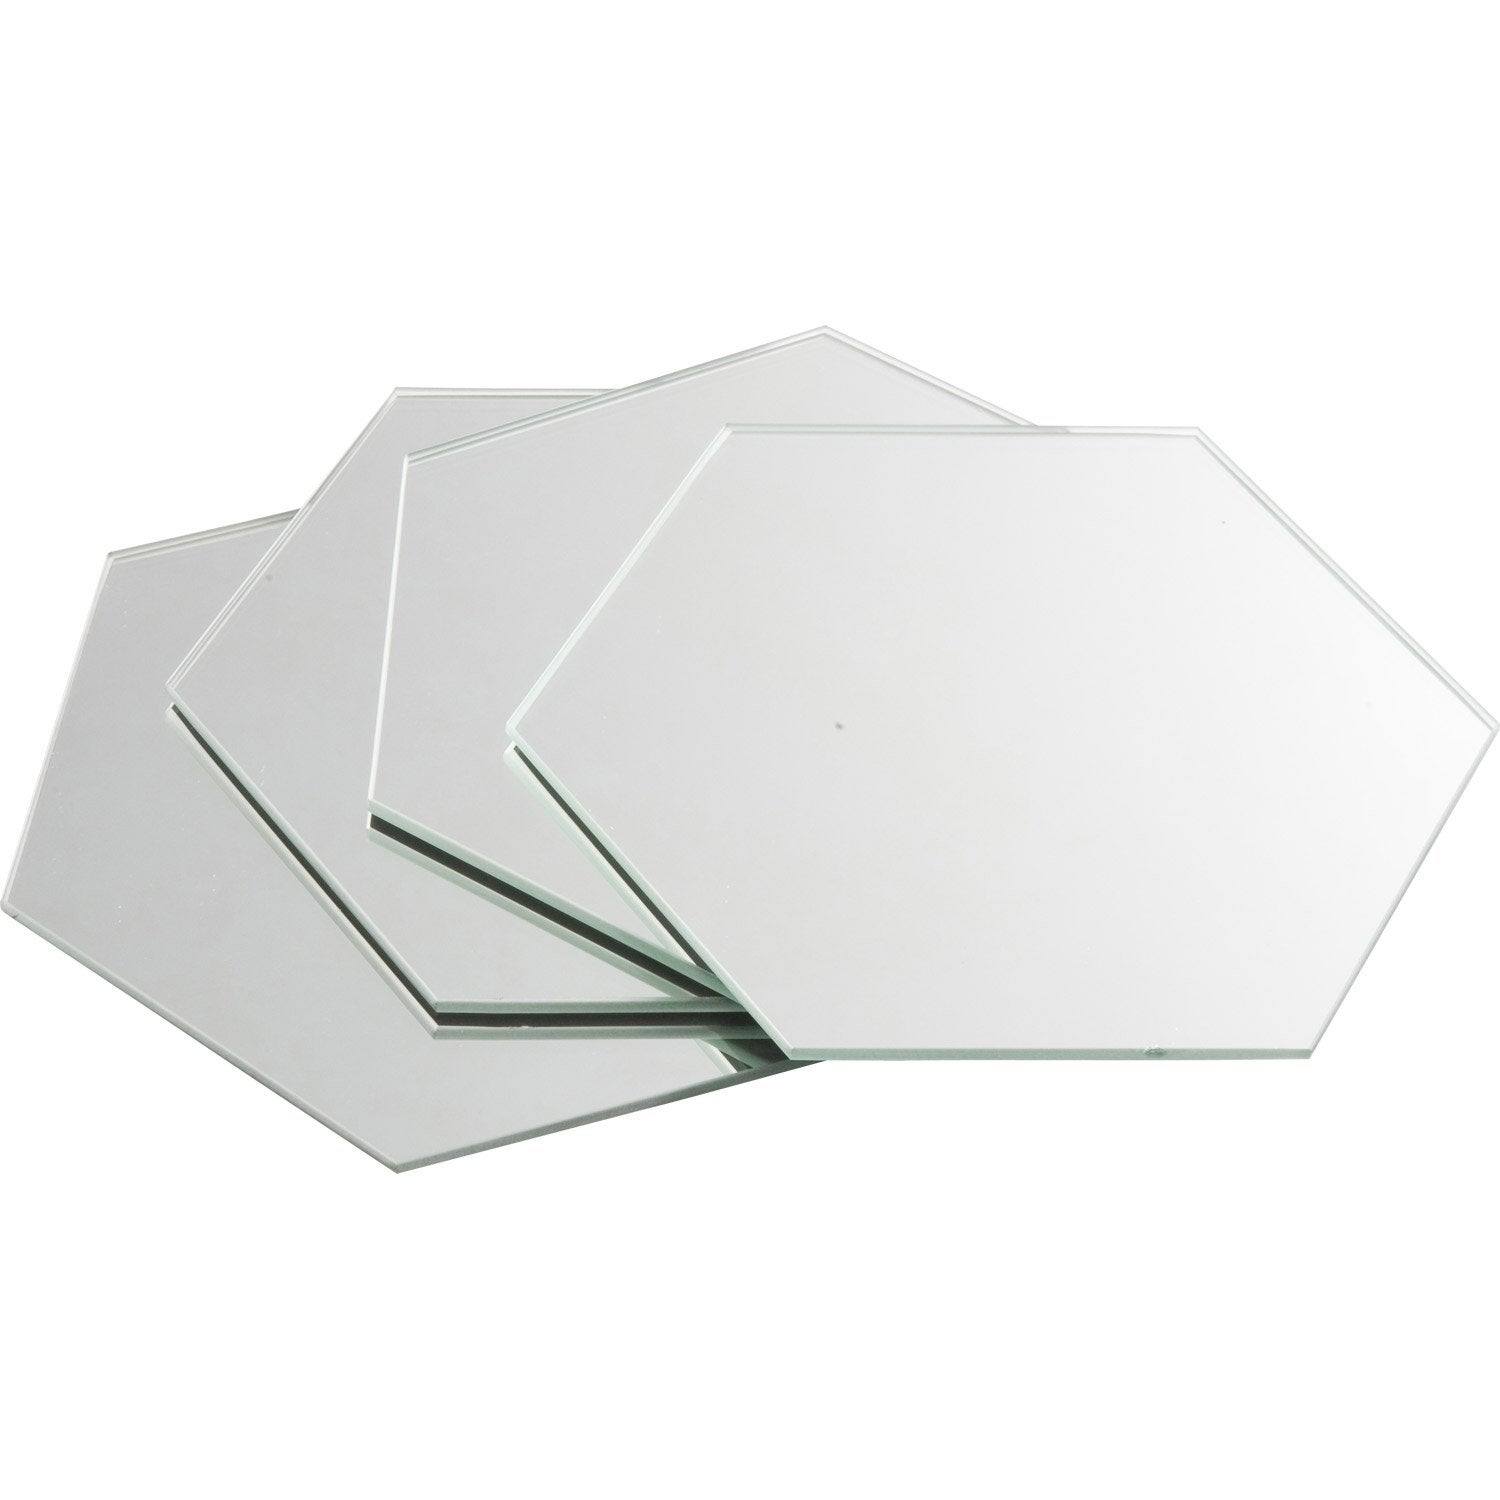 Carrelage hexagonal leroy merlin for Coller un miroir sur une porte